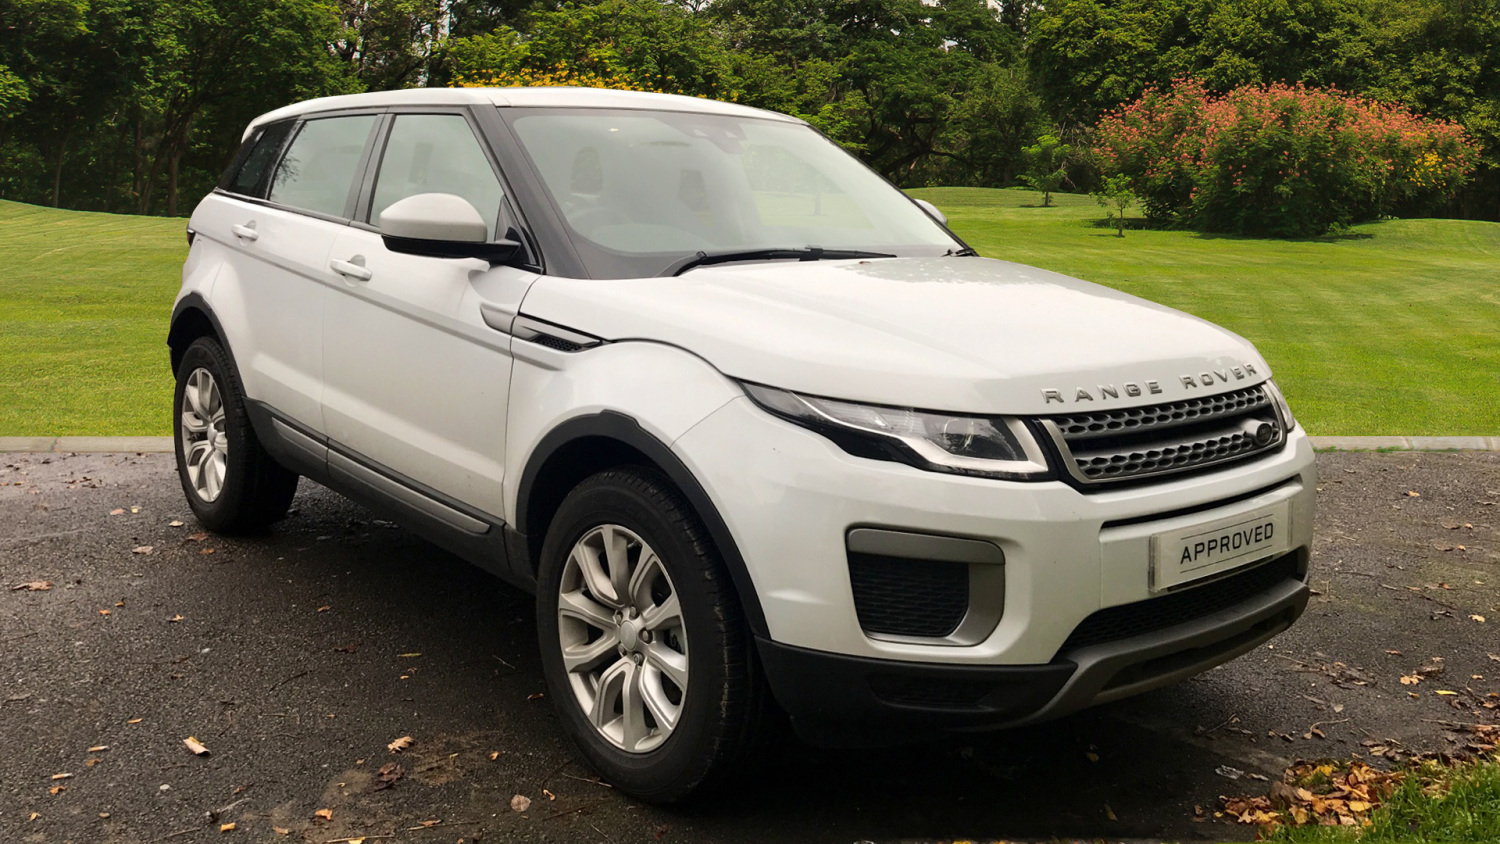 used land rover range rover evoque 2 0 td4 se 5dr auto diesel hatchback for sale bristol. Black Bedroom Furniture Sets. Home Design Ideas